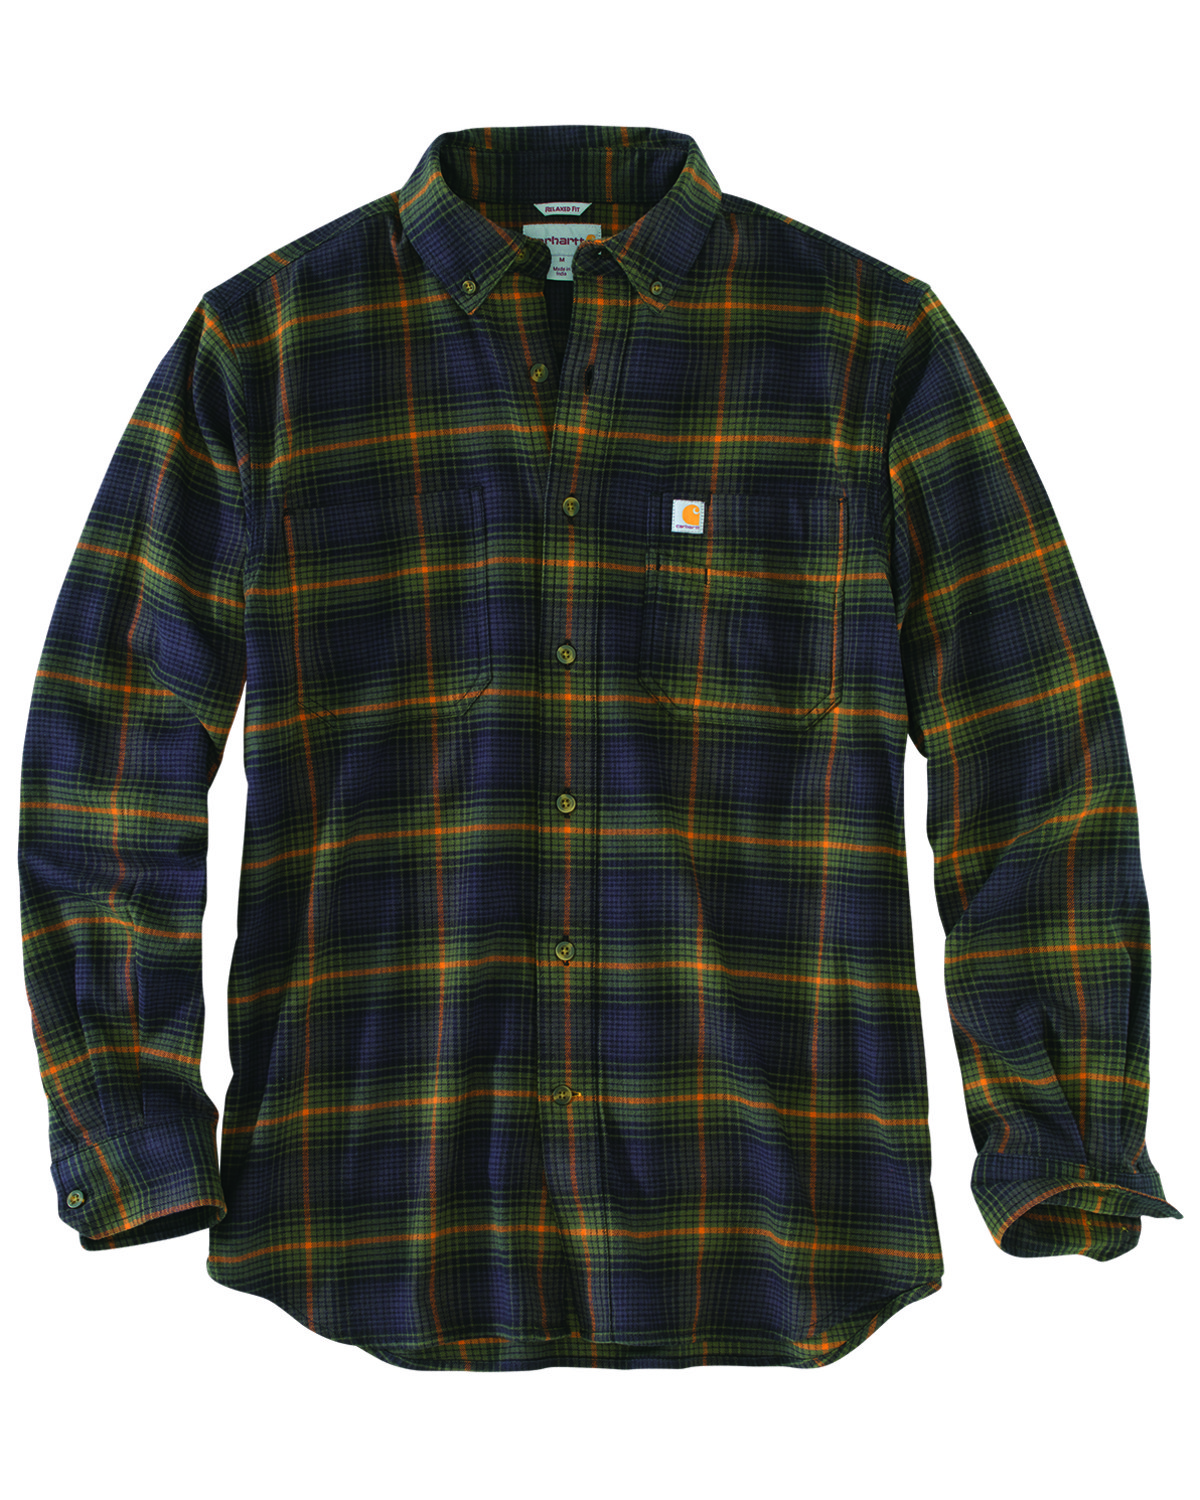 low price great quality outlet online Carhartt Men's Rugged Flex Hamilton Plaid Long Sleeve Work Shirt